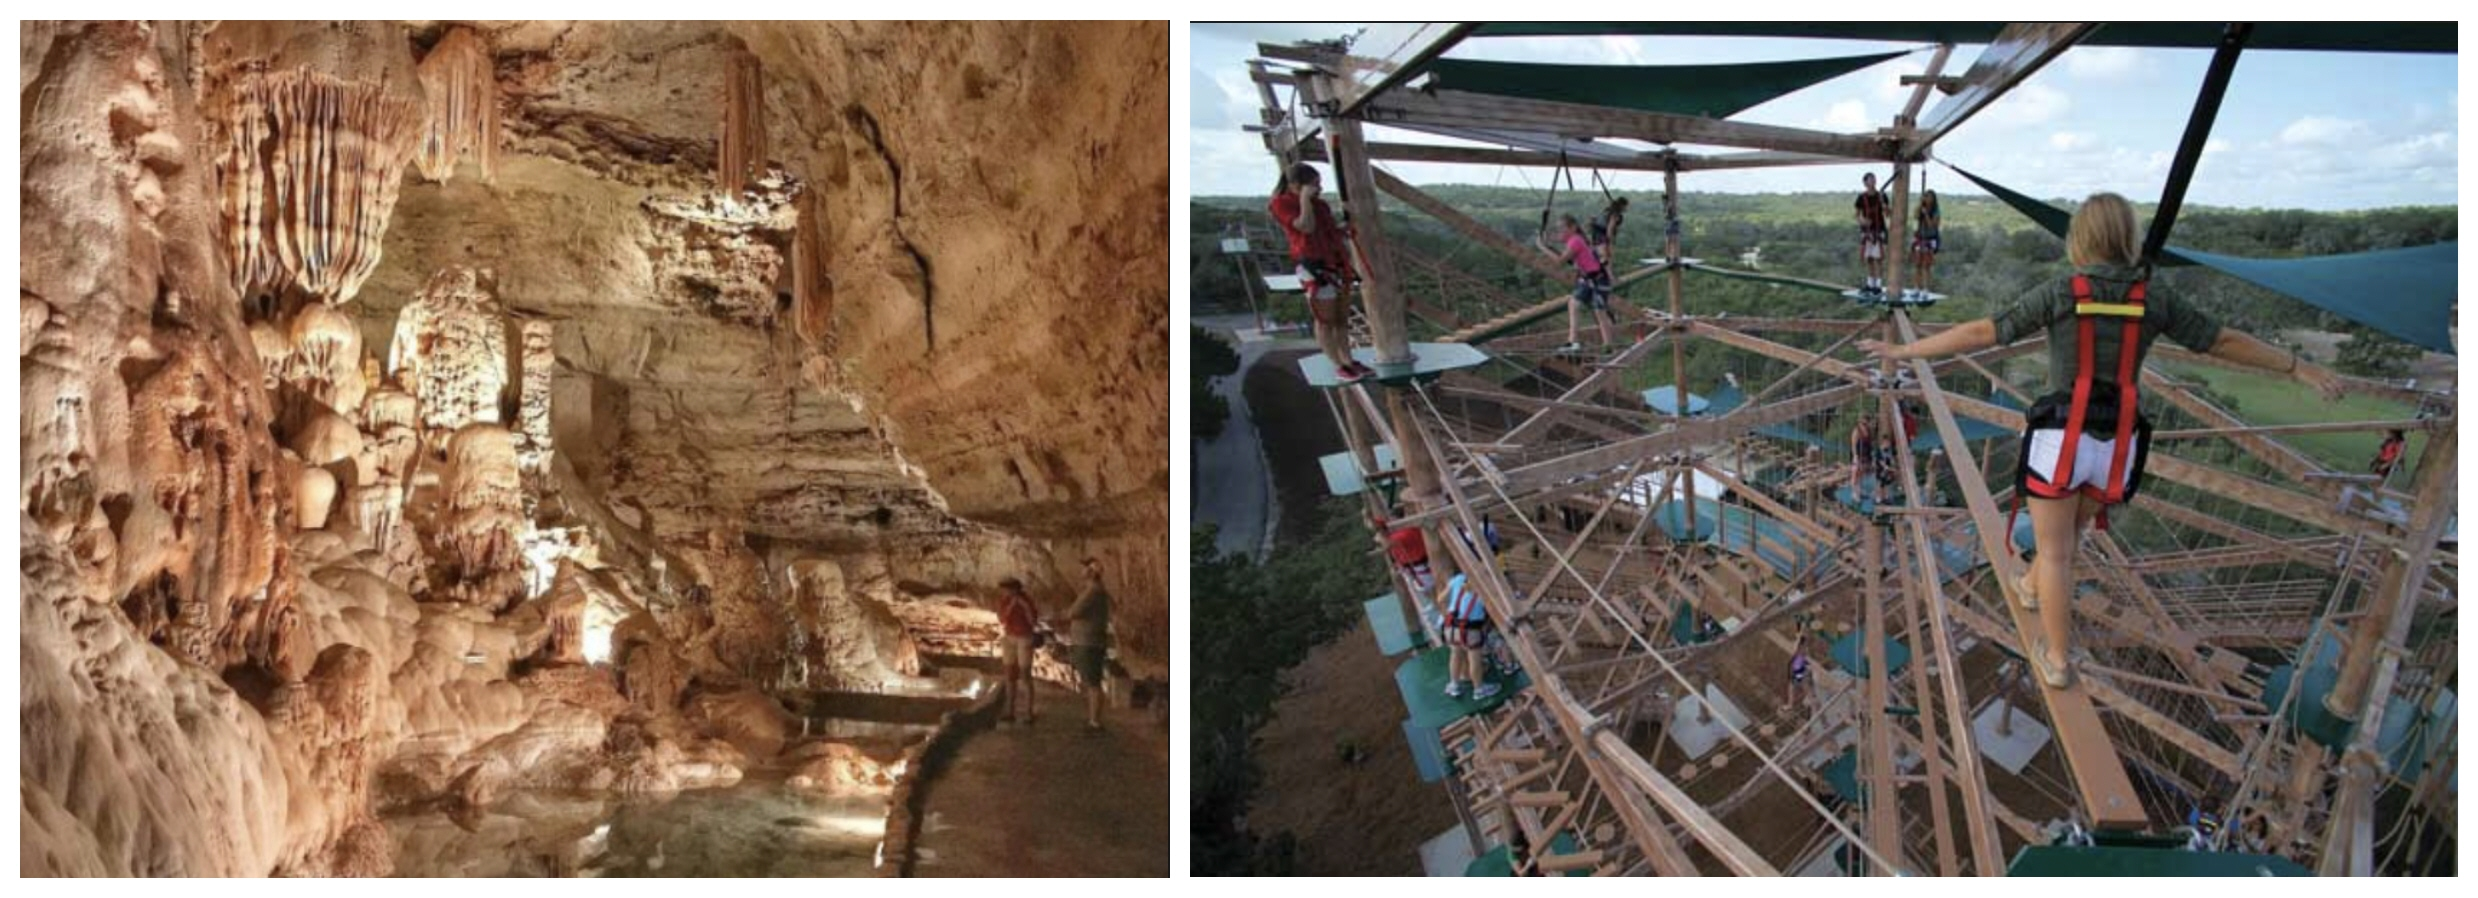 Cavern and Rope Course